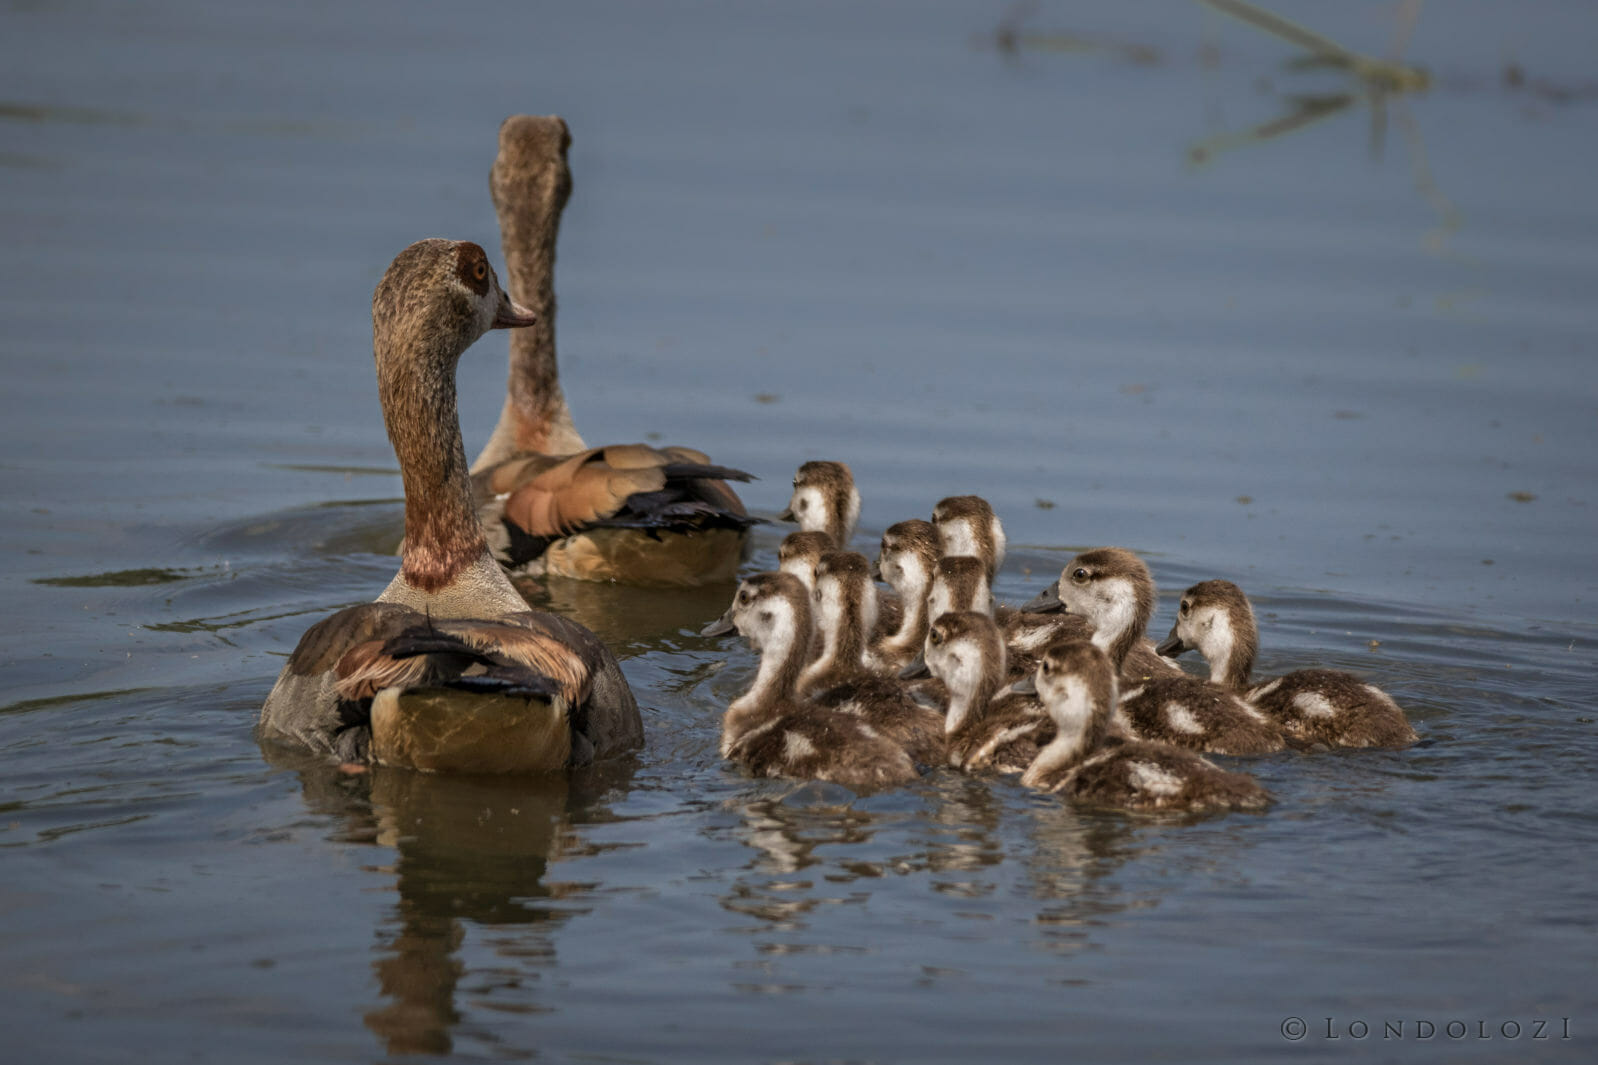 Two Egyptian geese and their ducklings swimming